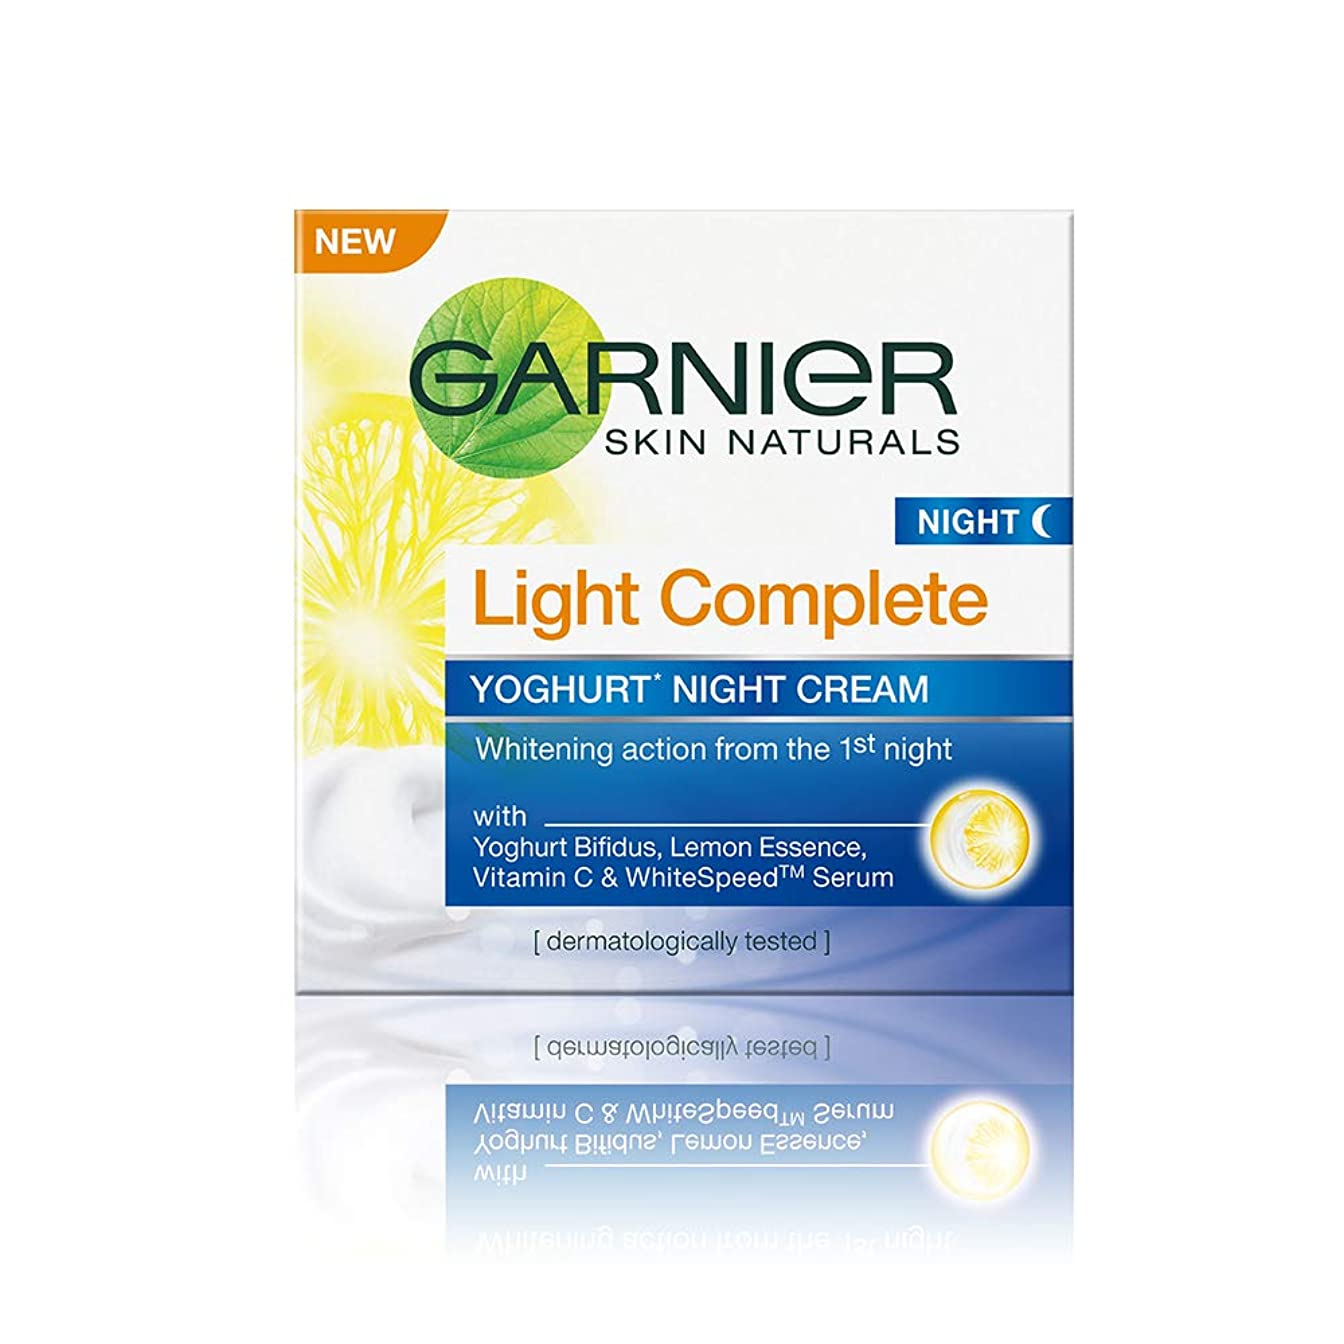 テザー避難丘Garnier Skin Naturals Light Complete Night Cream, 40g